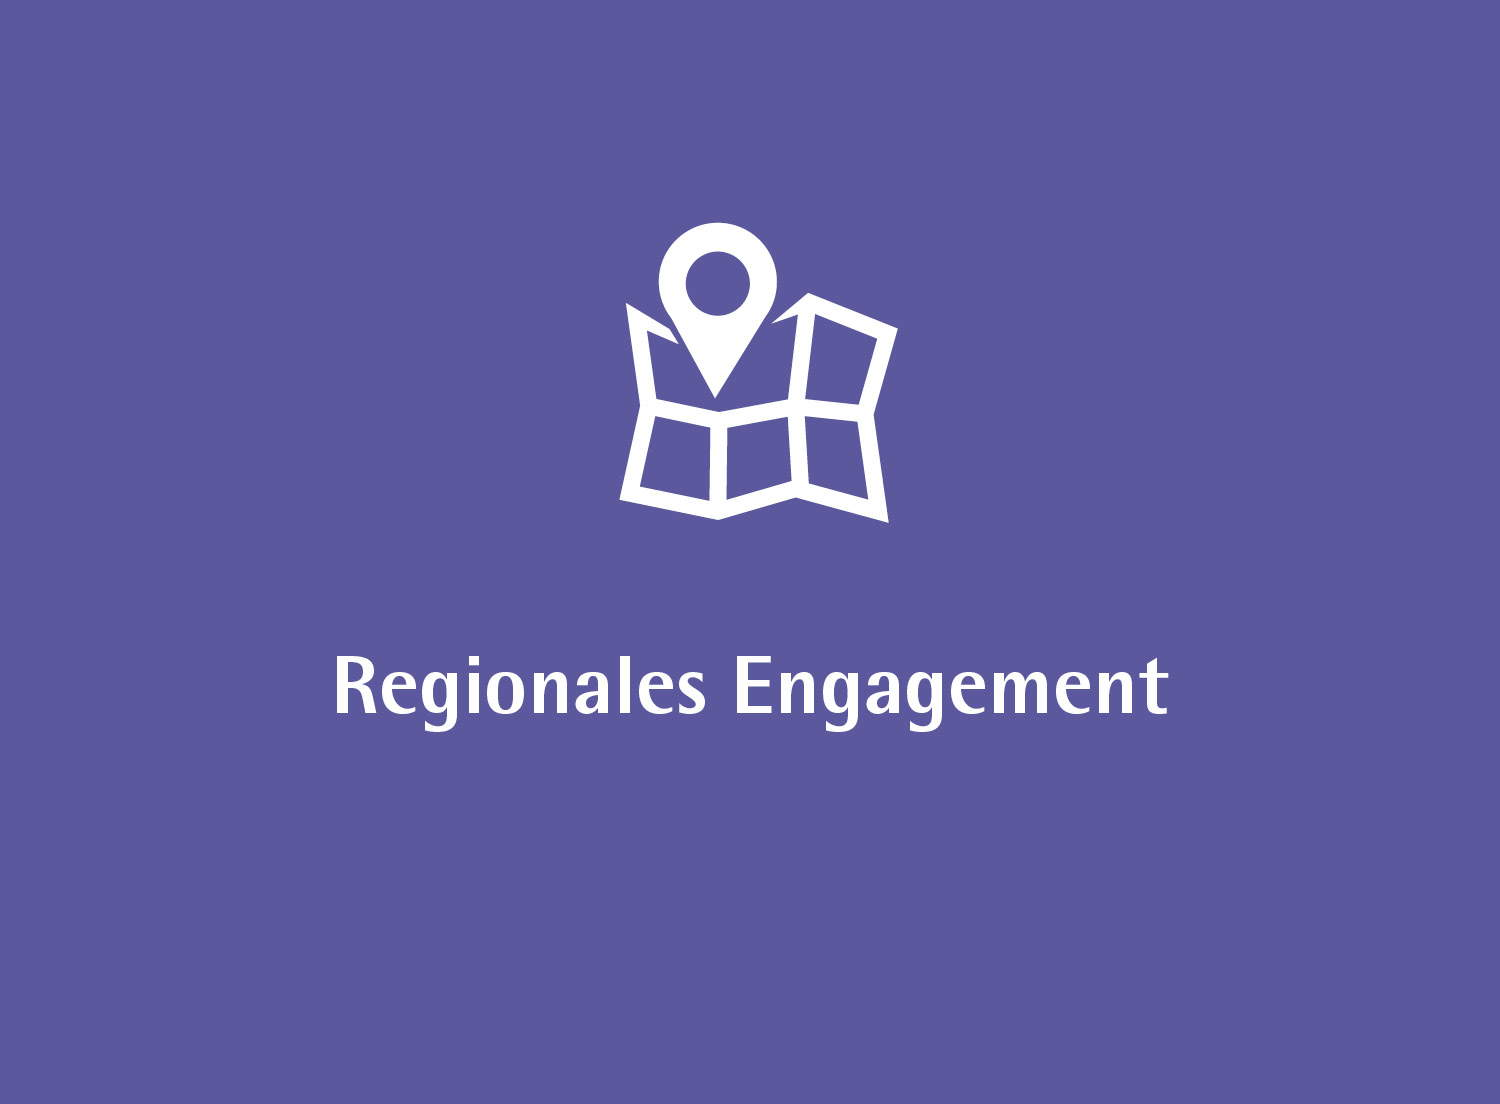 Regionales Engagement